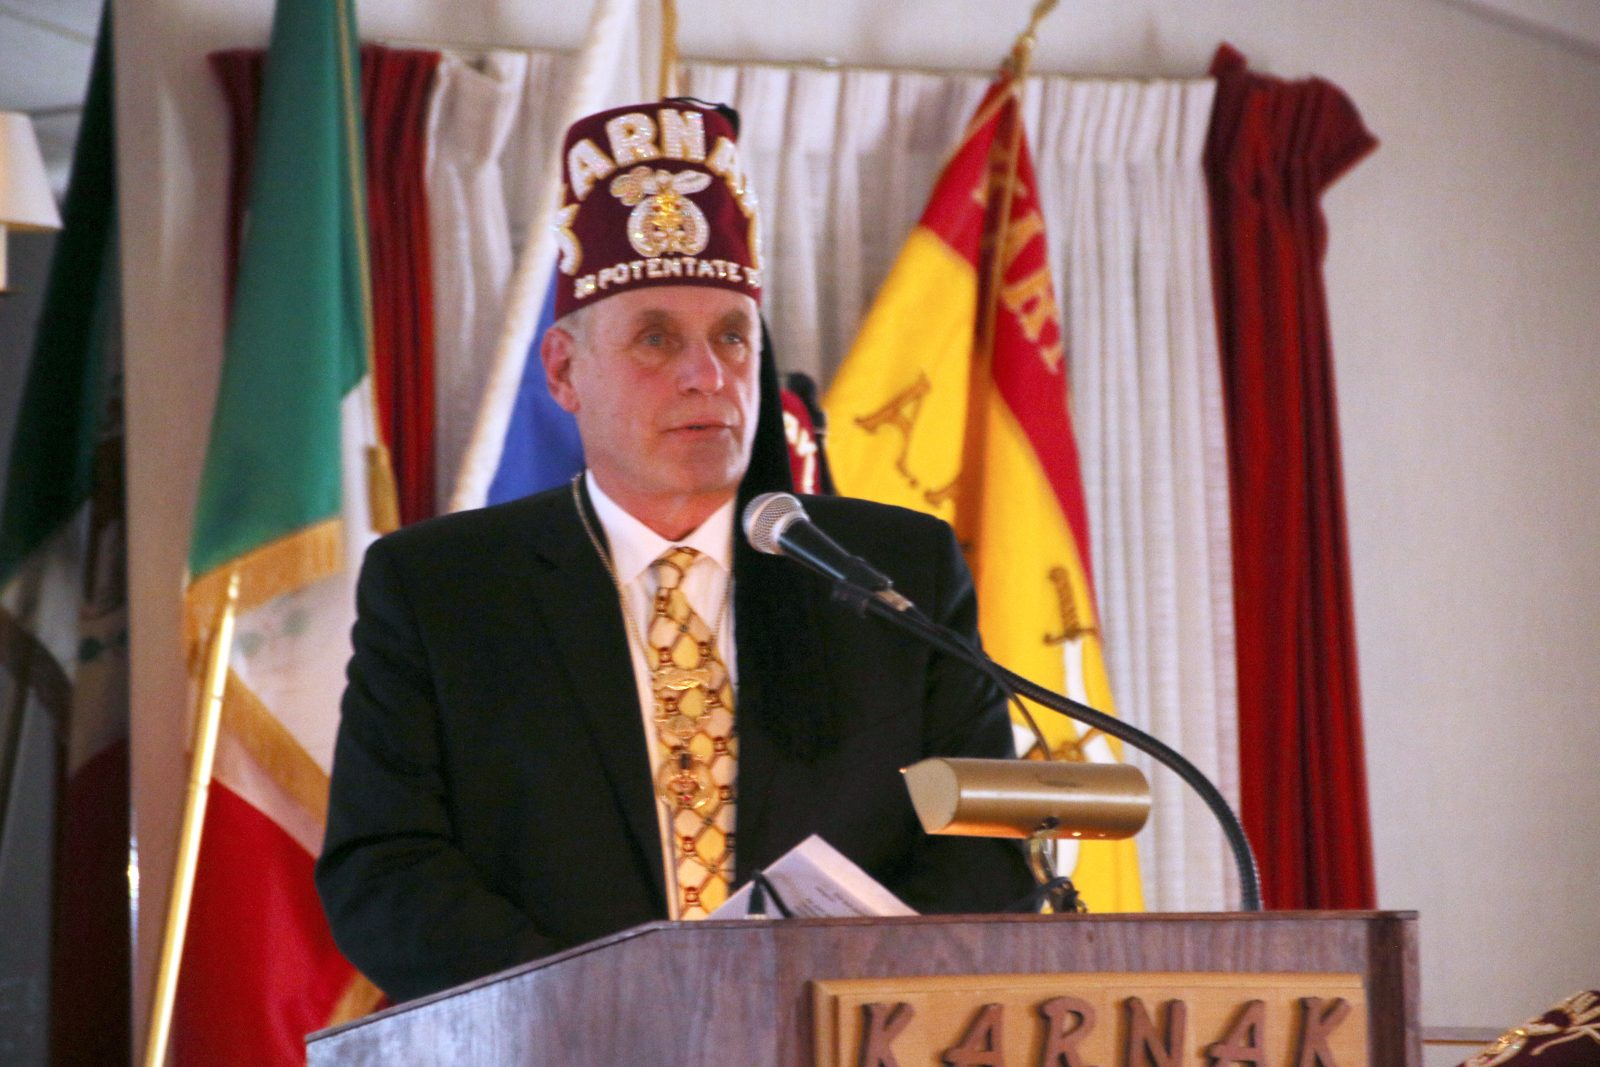 Local man Andre Cayer to lead Shriners in SD&G and Quebec